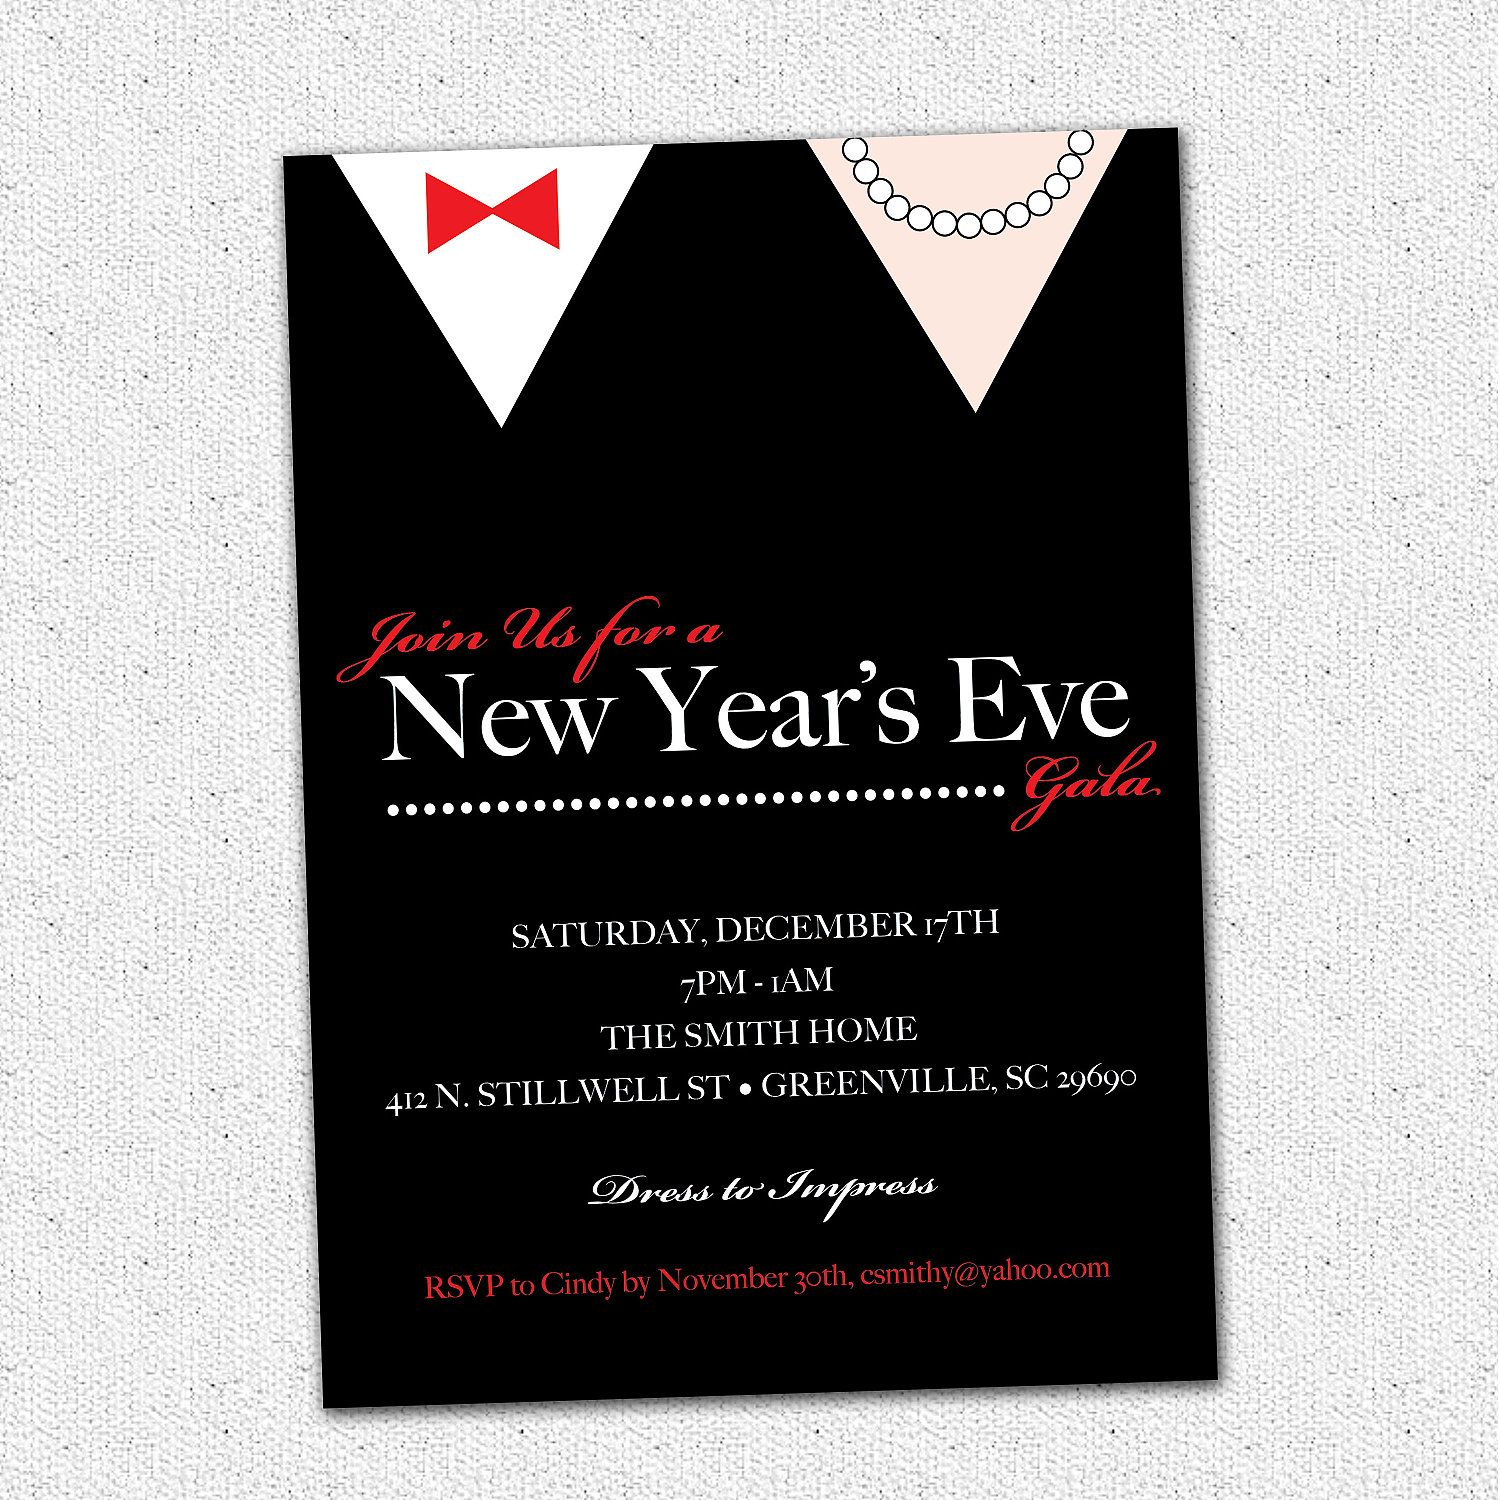 new years eve gala ball celebration bash party invitation black tie event formal printable